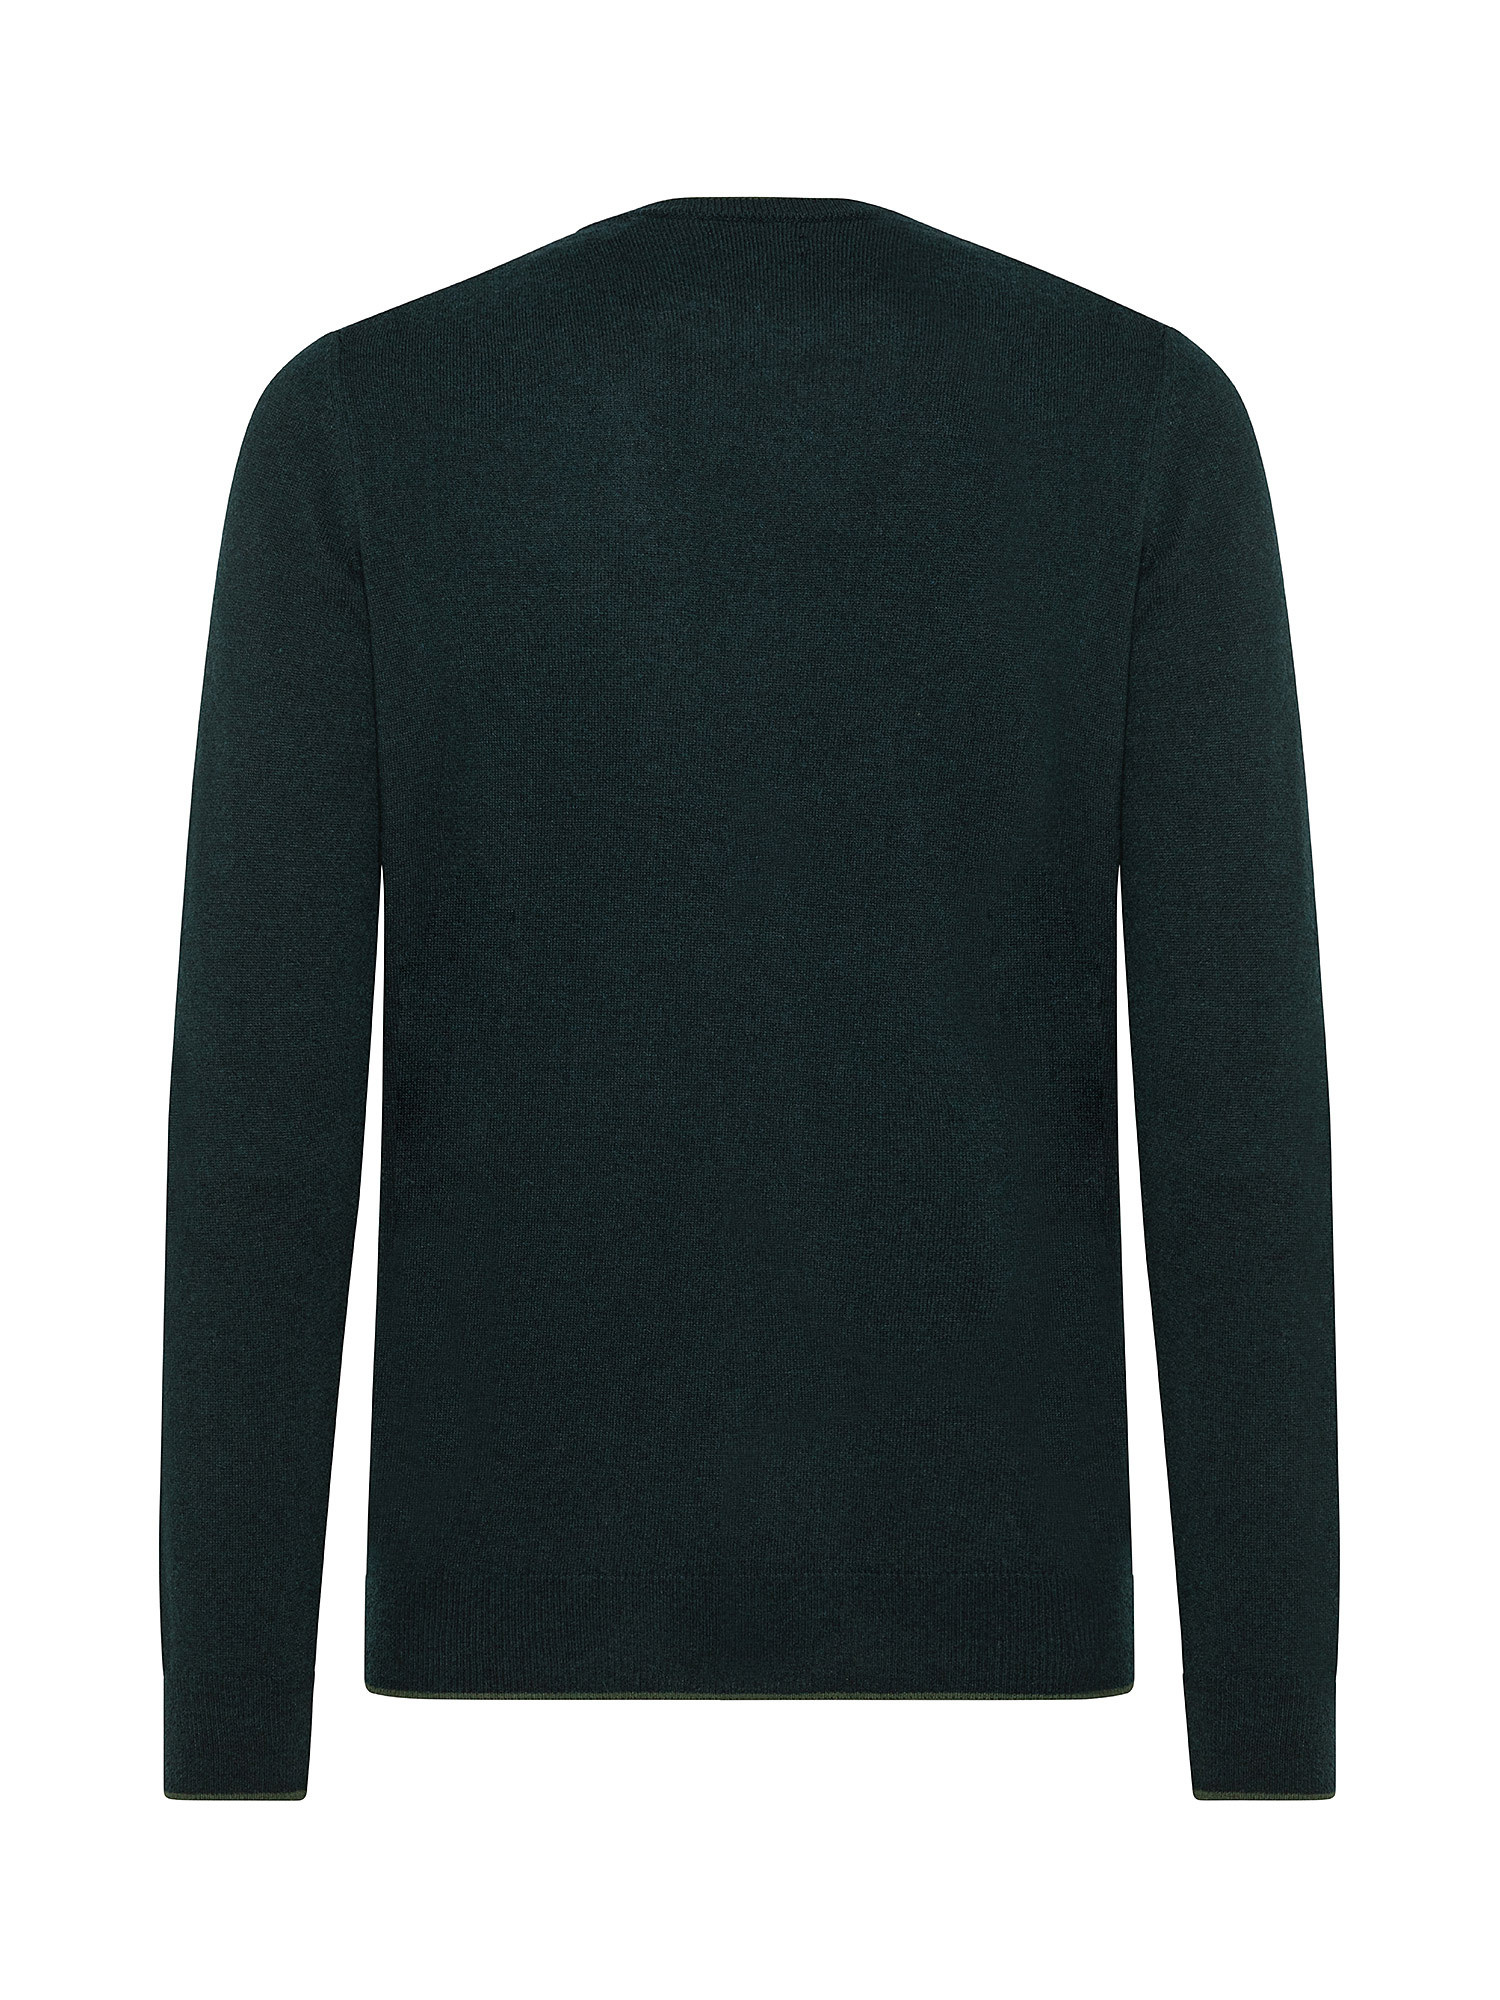 Maglia in eco cachemire, Verde, large image number 1